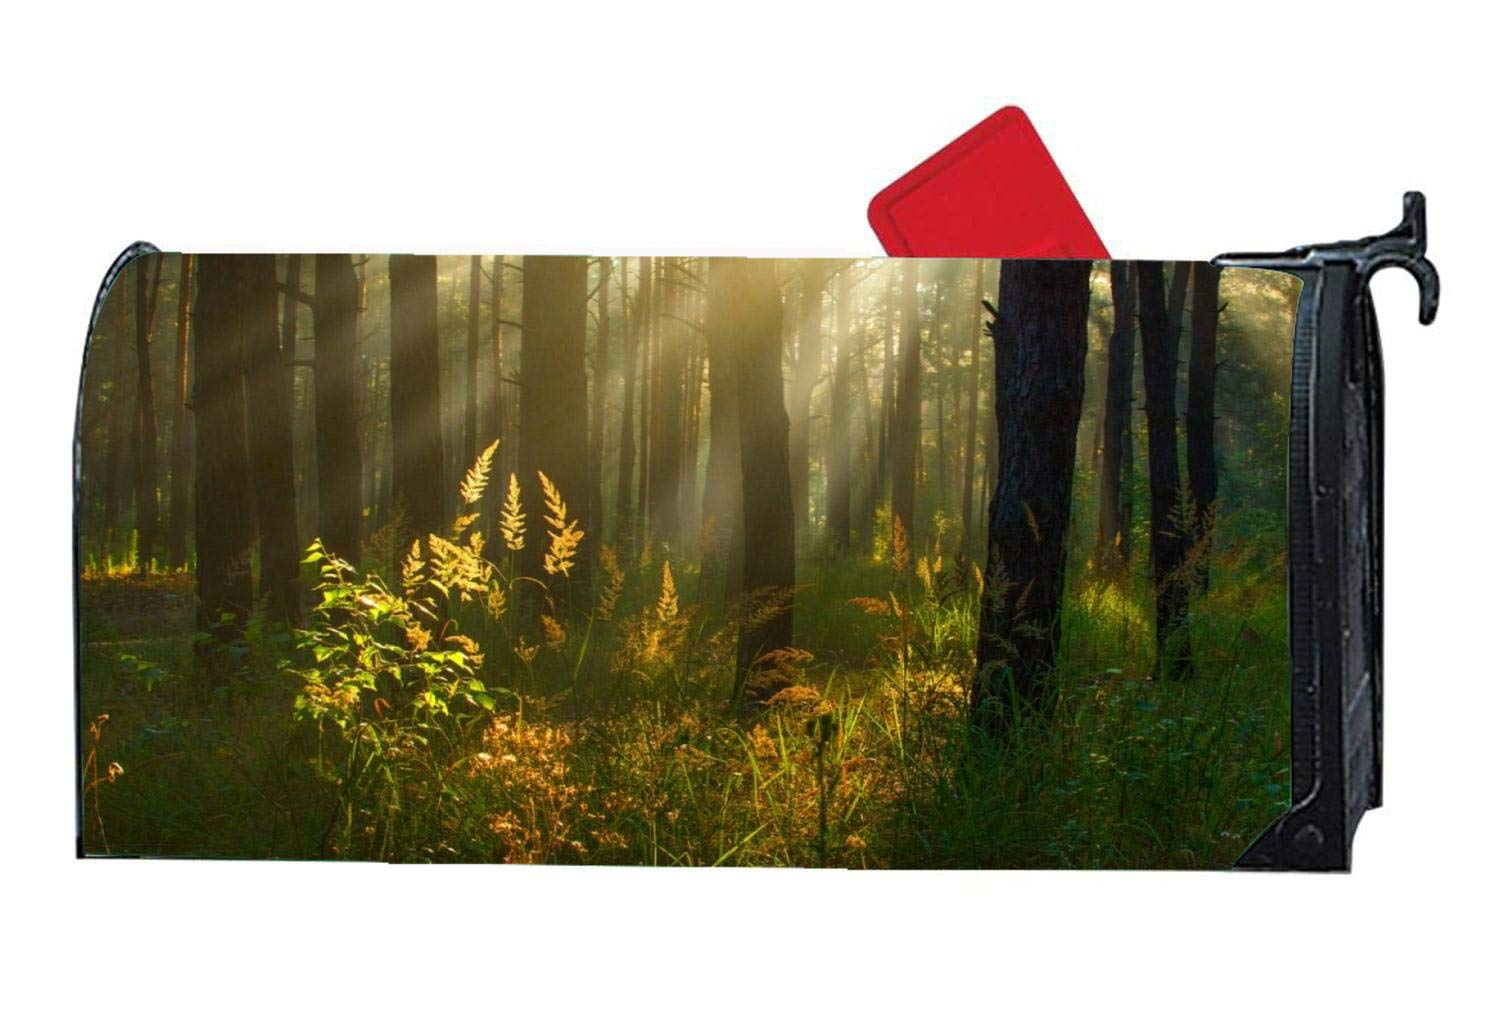 Magnetic Mailbox Cover, Decorative Vintage Vinyl Mailbox Wrap for Standard Size 6.5 x 19 inches - Forest Sunlight